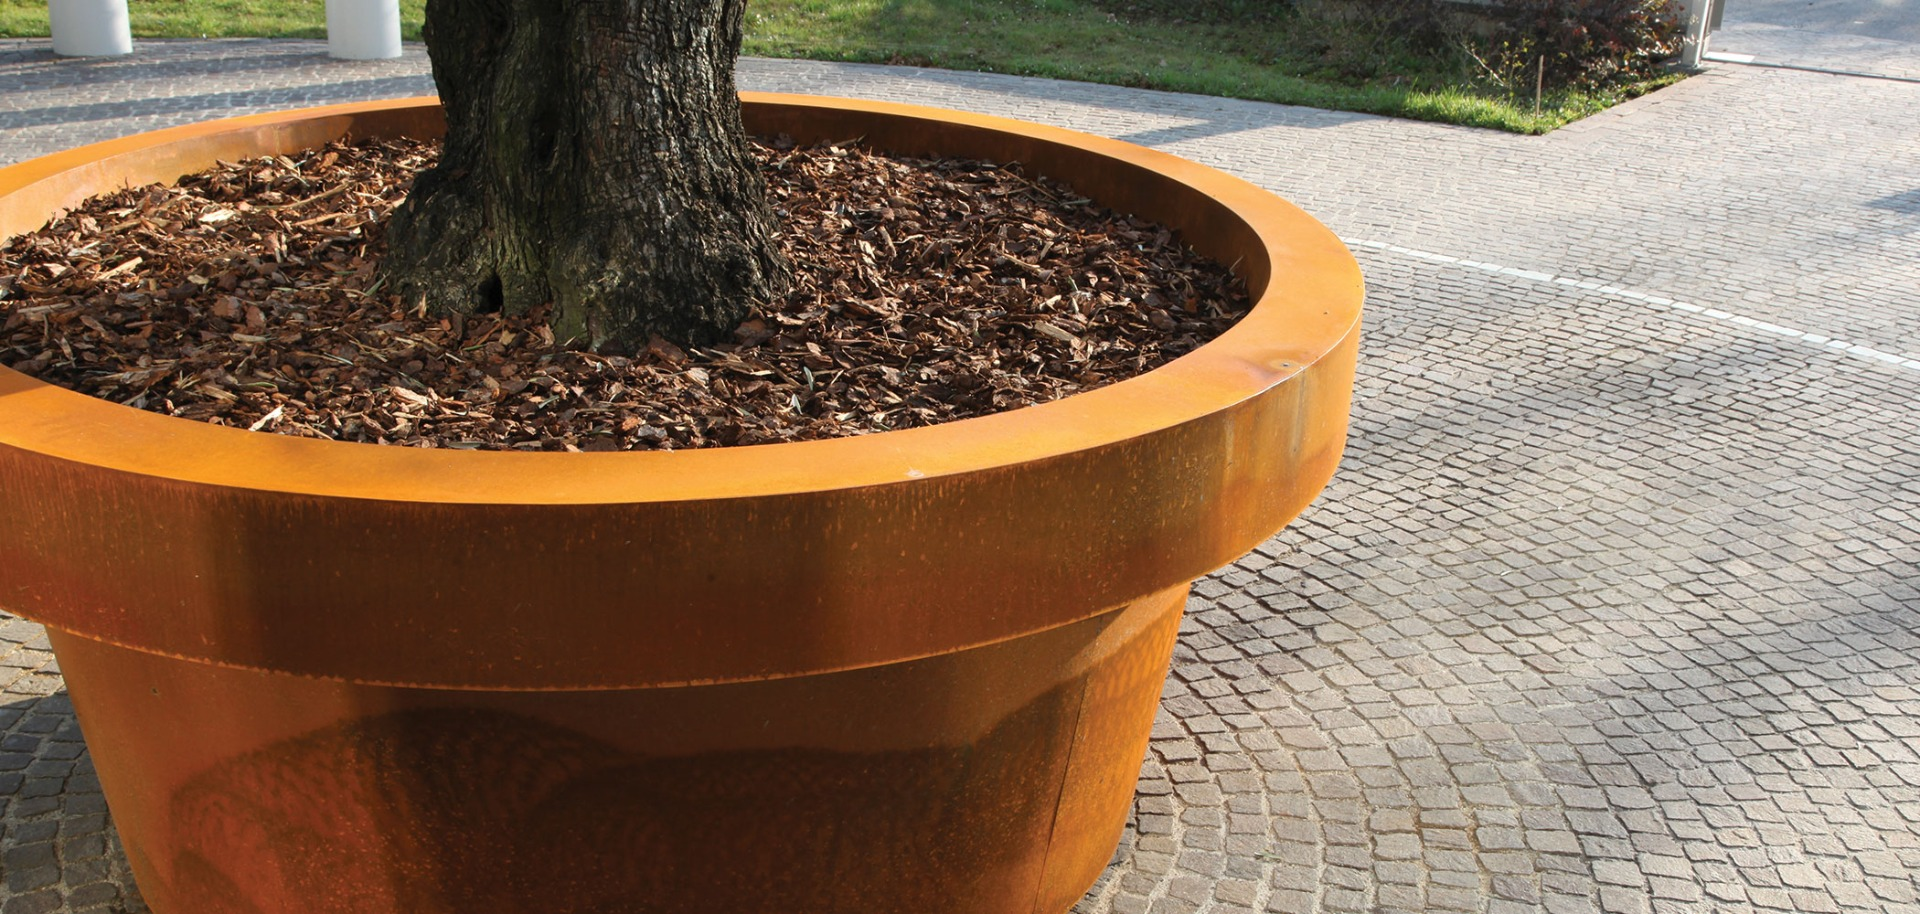 Artform launch impressive gigantic steel planter